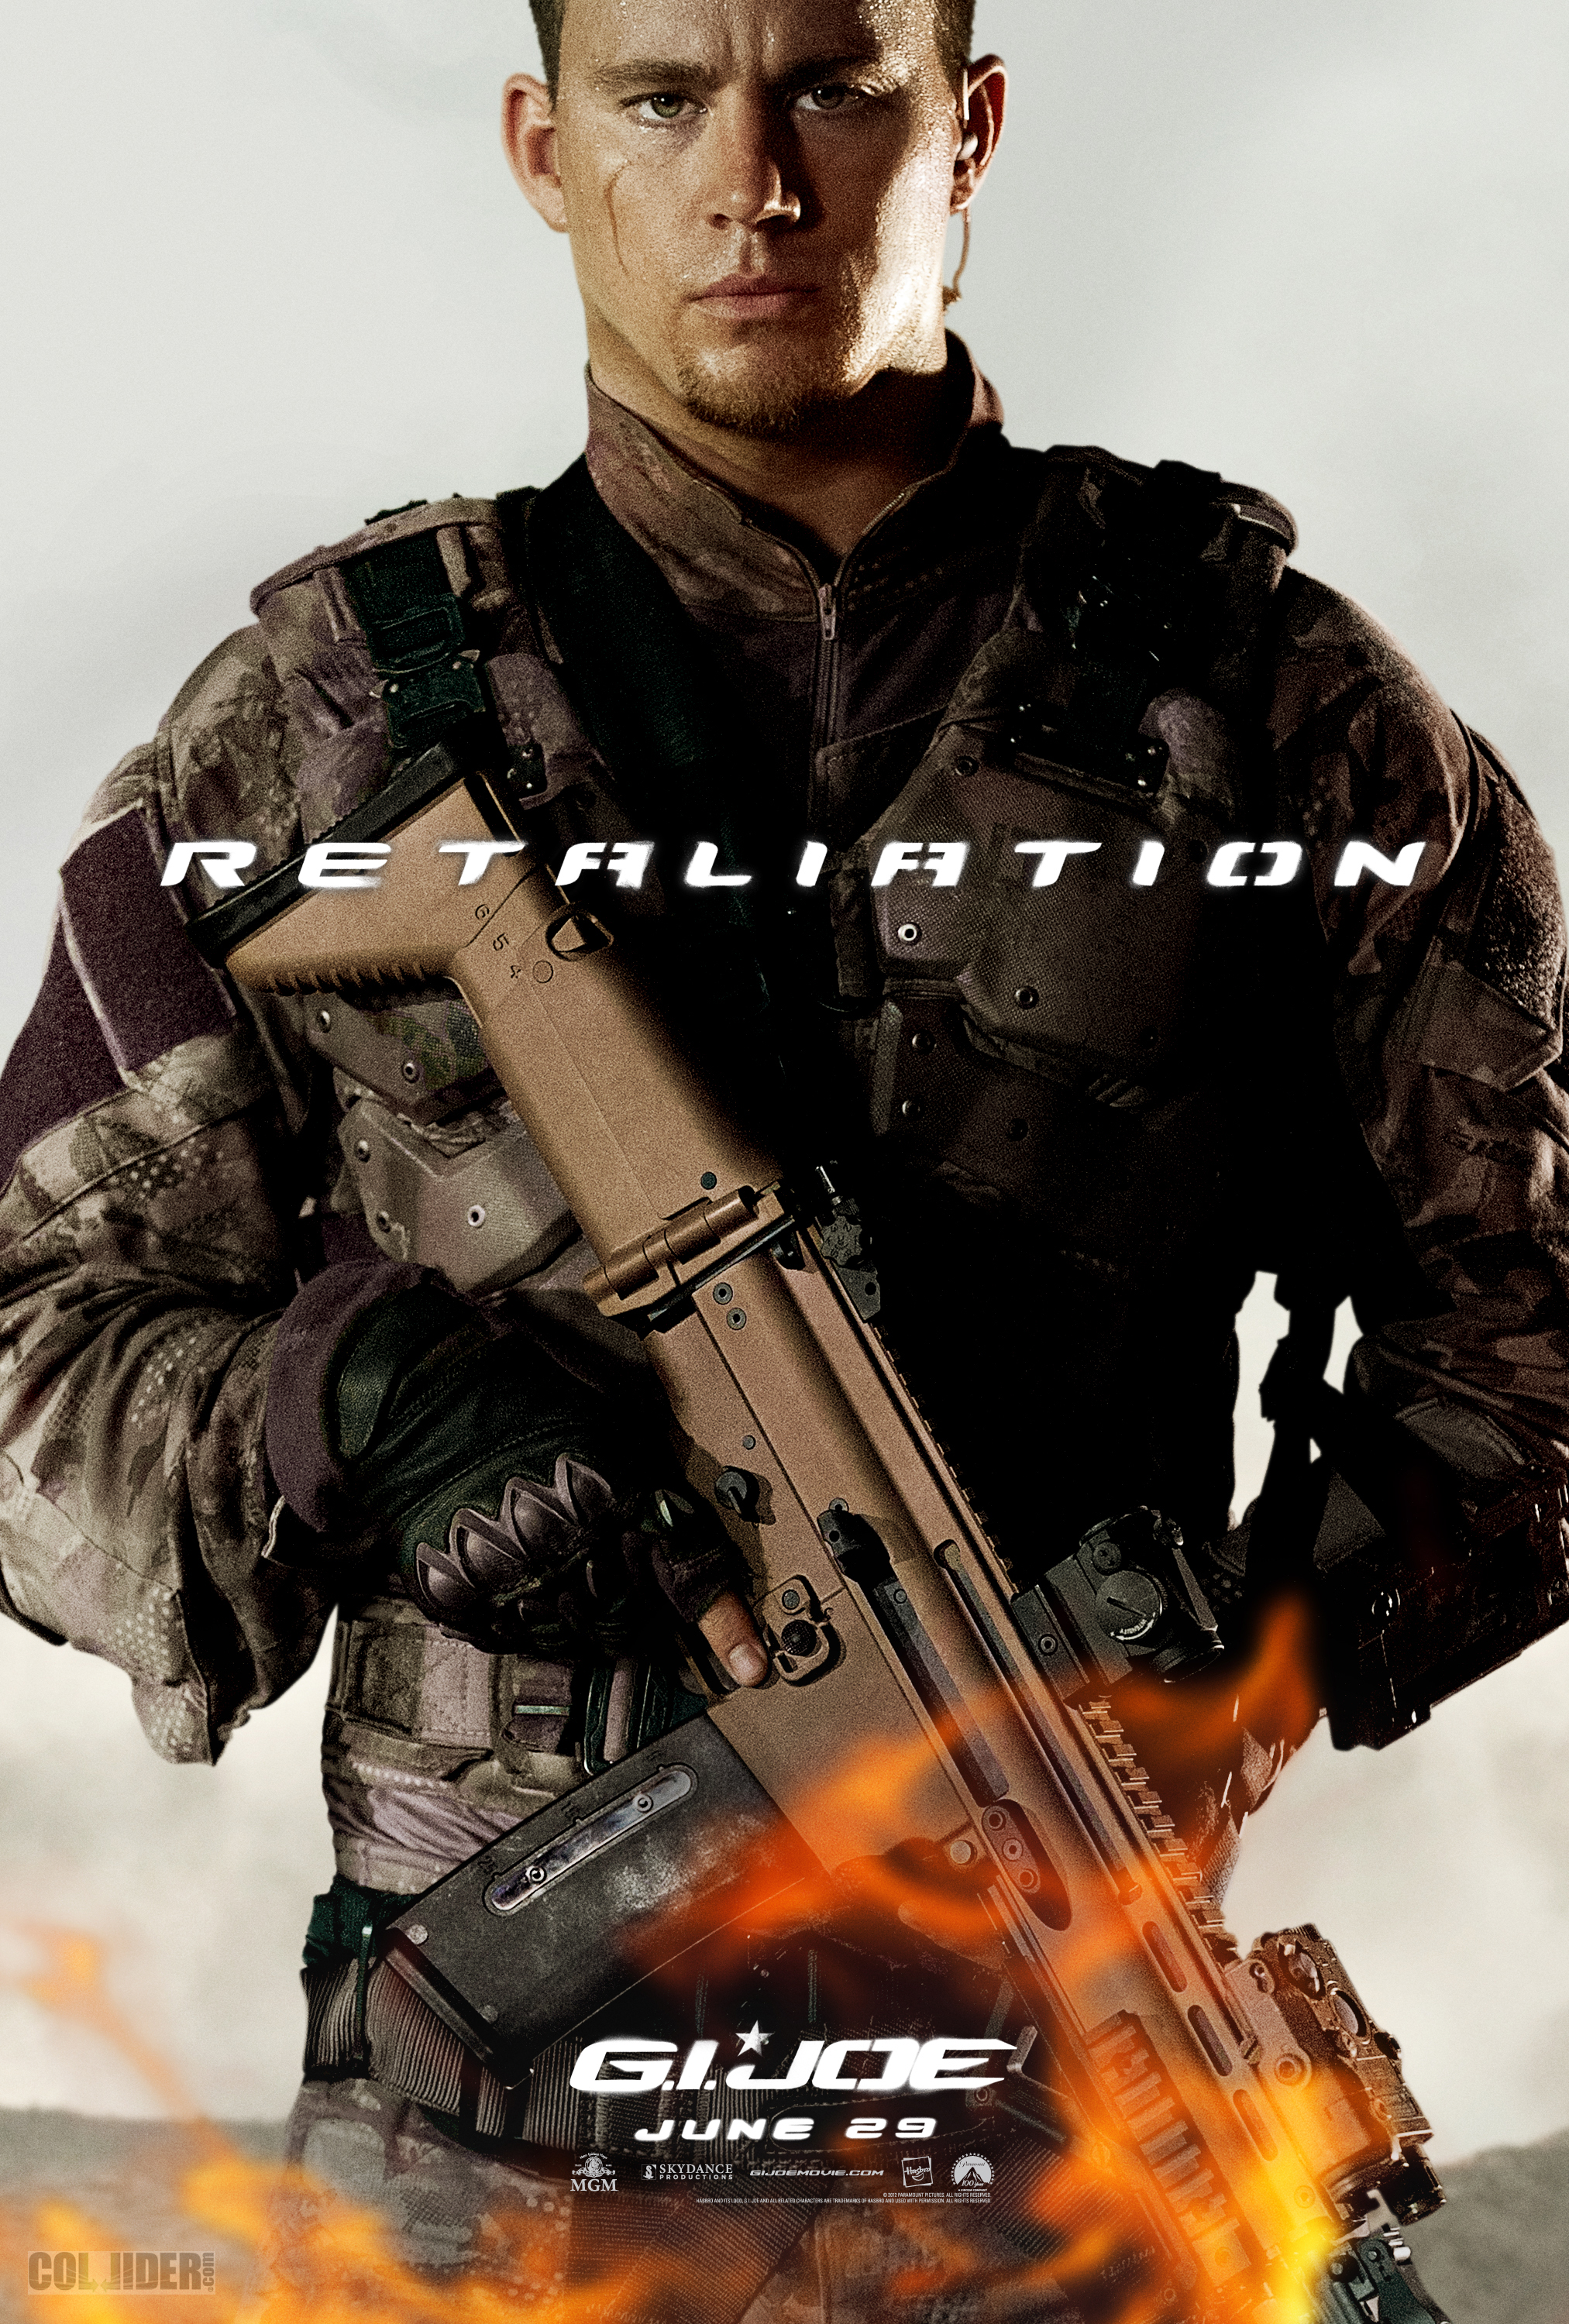 https://austrialpin.net/wp-content/uploads/2016/08/GI-Joe-2-Poster-Tatum.jpg